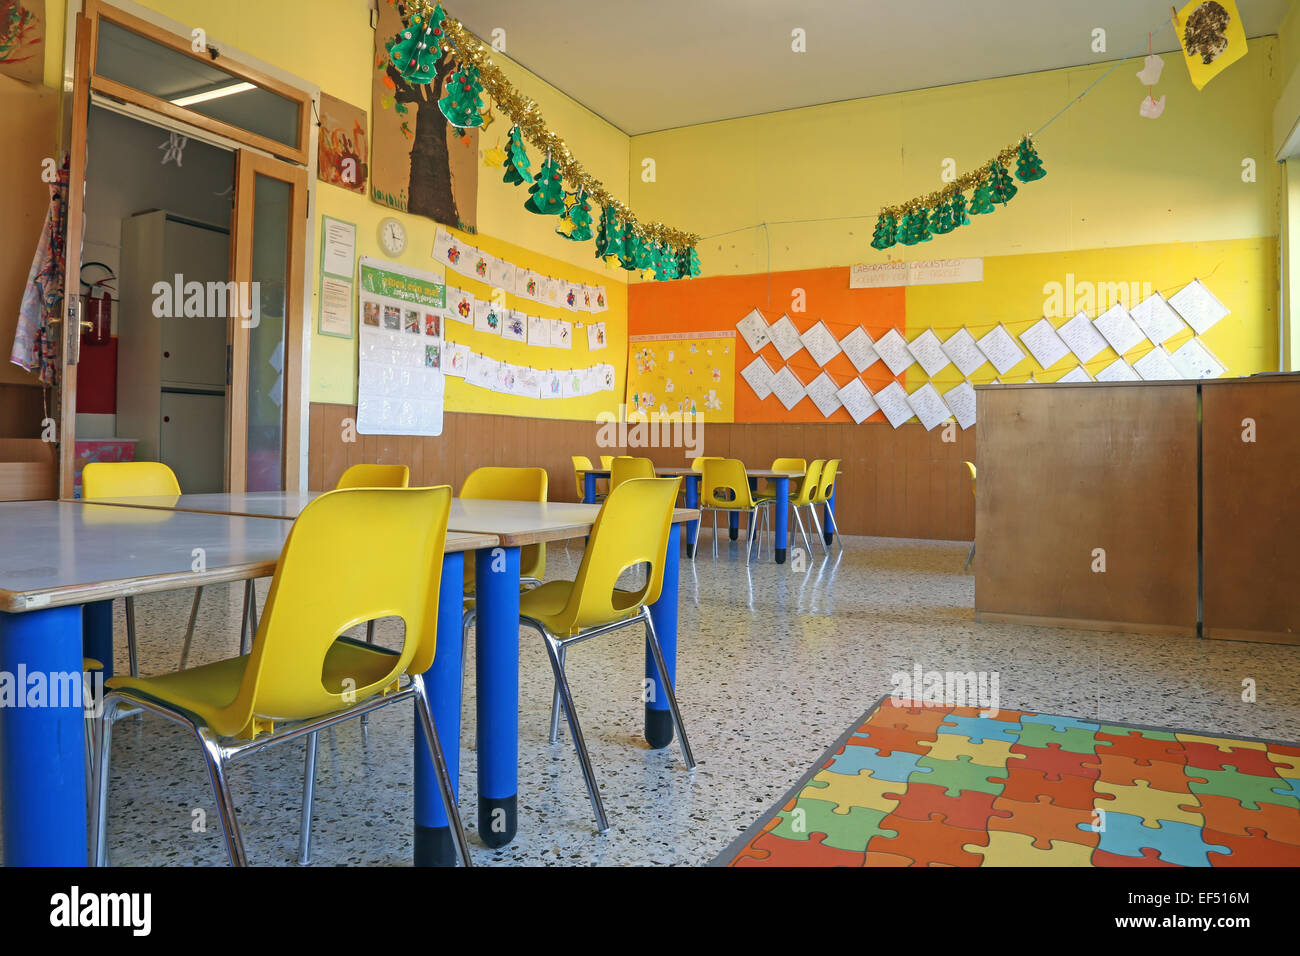 preschool classroom with yellow chairs and table stock image - Kinder Garden